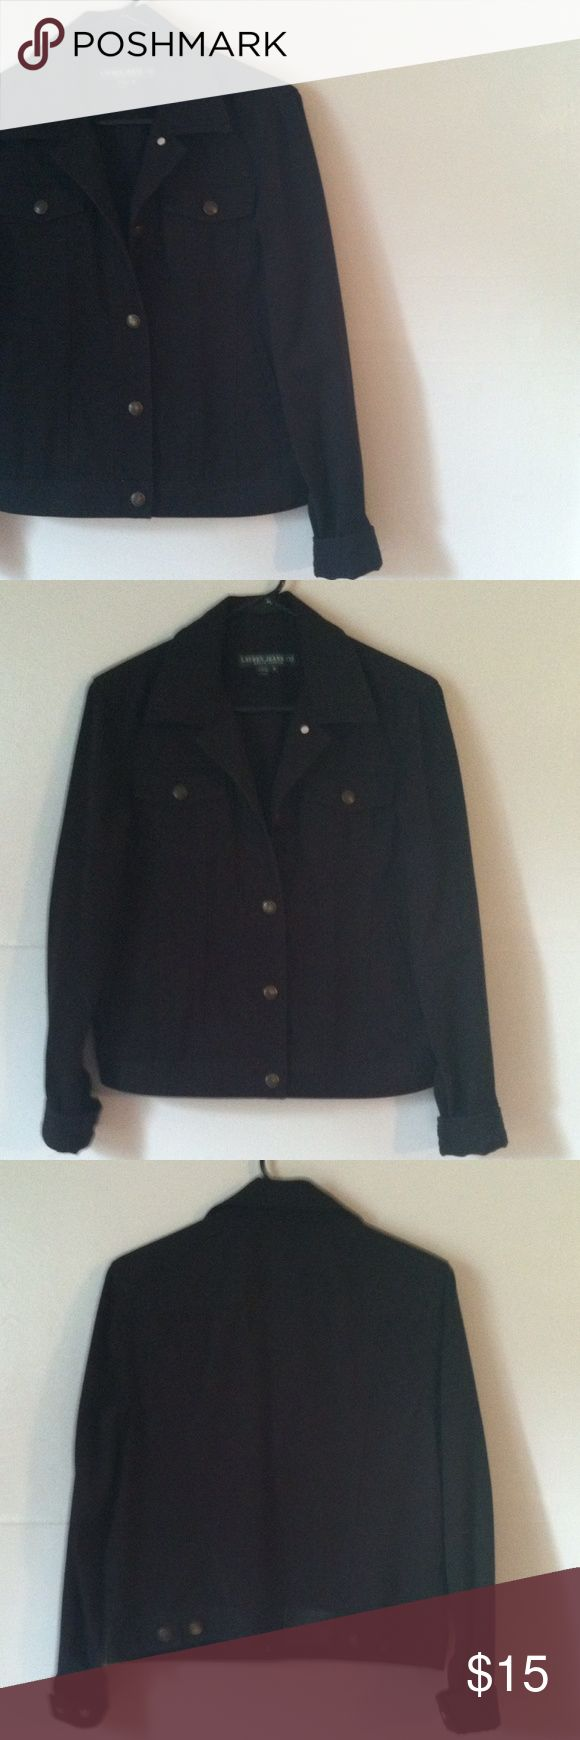 Ralph Lauren black Jean jacket Medium •Excellent used condition •Has button up closure, pockets on each side, full length button cuff sleeves, and a collar •Jean material •Color: Black •Brand: Lauren Jeans Co. by Ralph Lauren •Size: Medium •NO TRADES Ralph Lauren Jackets & Coats Jean Jackets